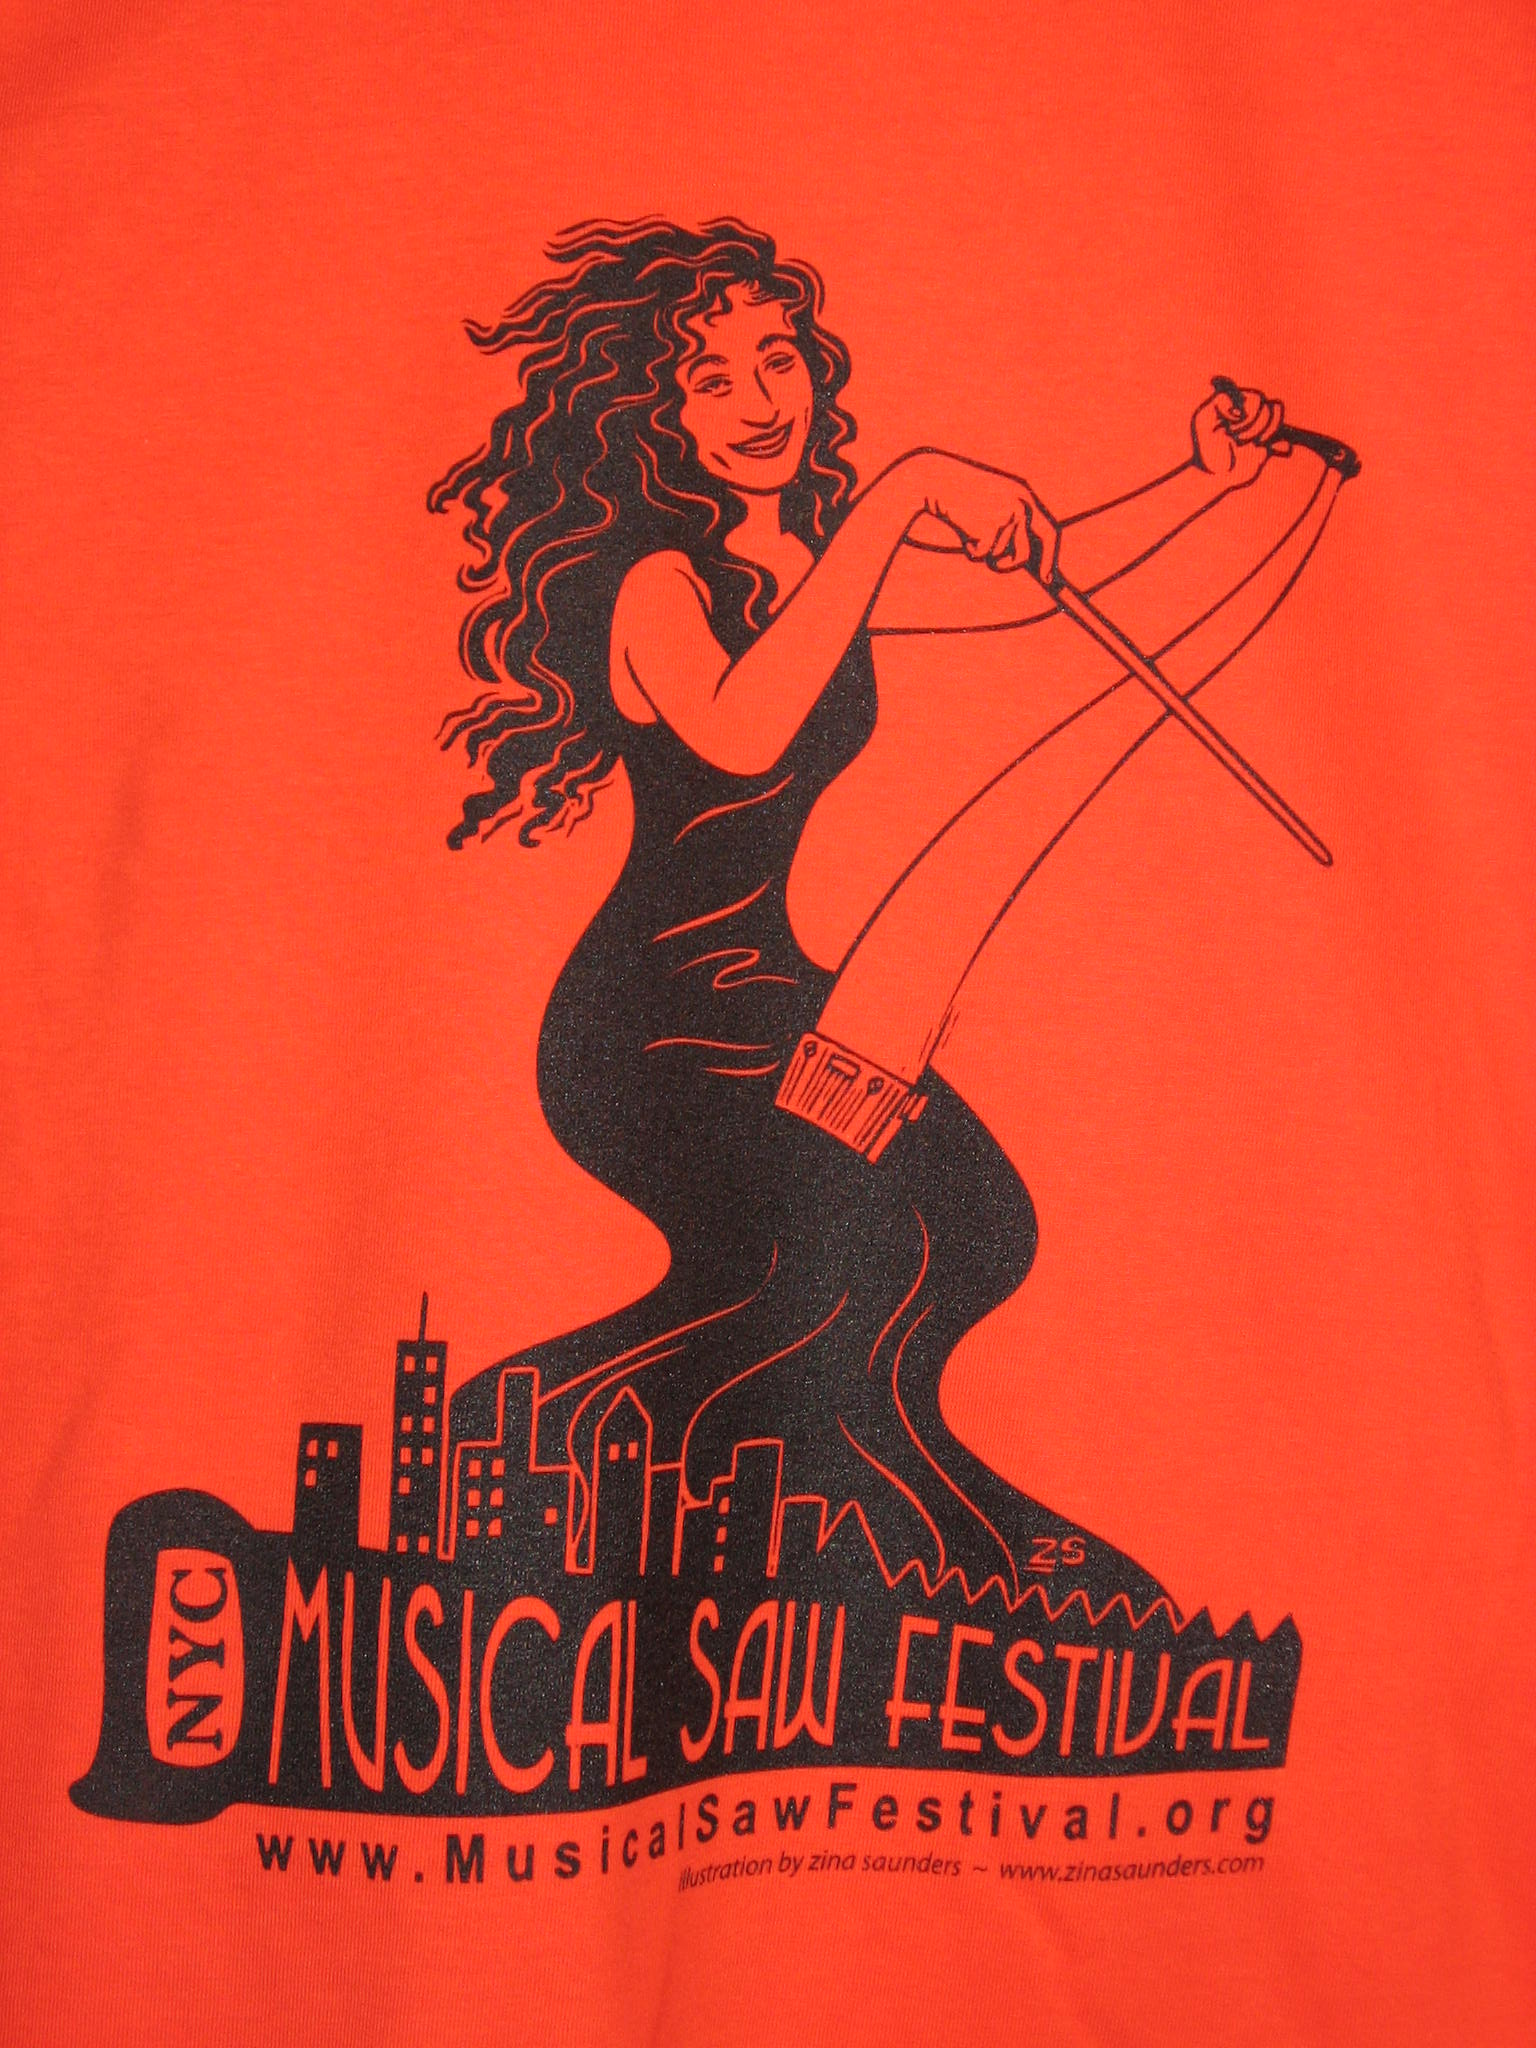 Orange Musical Saw Festival t-shirt